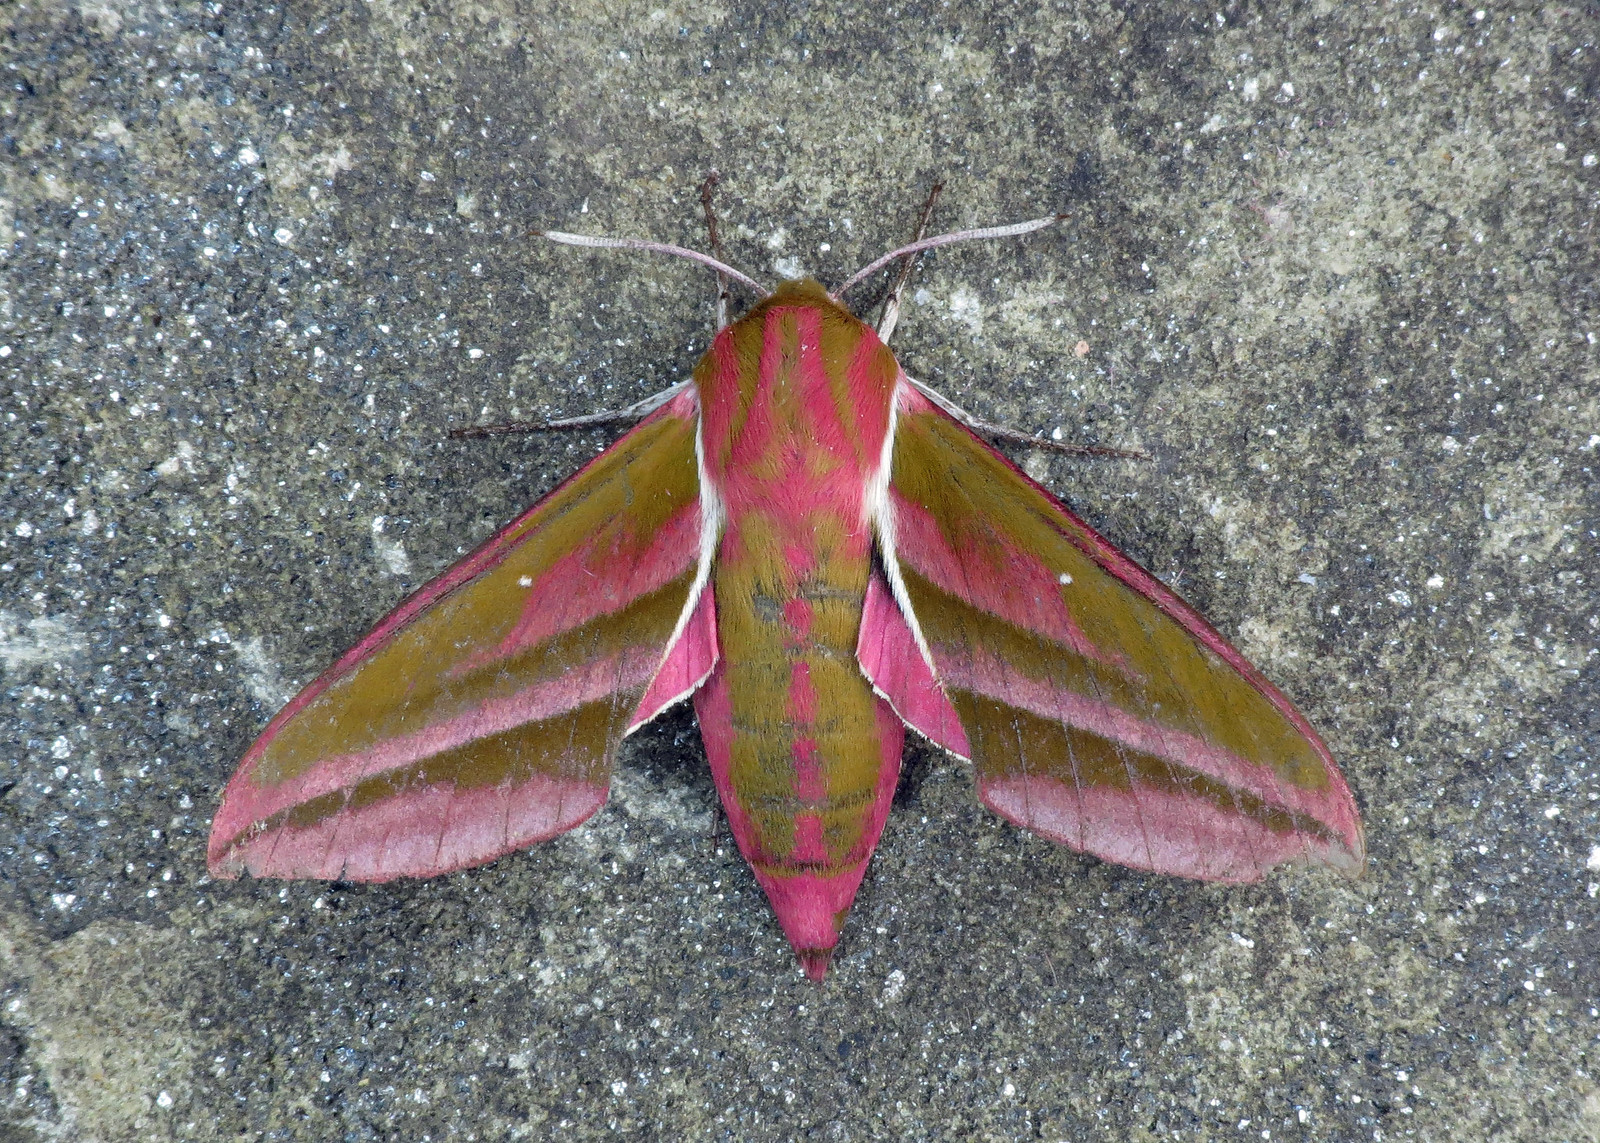 1991 Elephant Hawk-moth - Deilephila elpenor